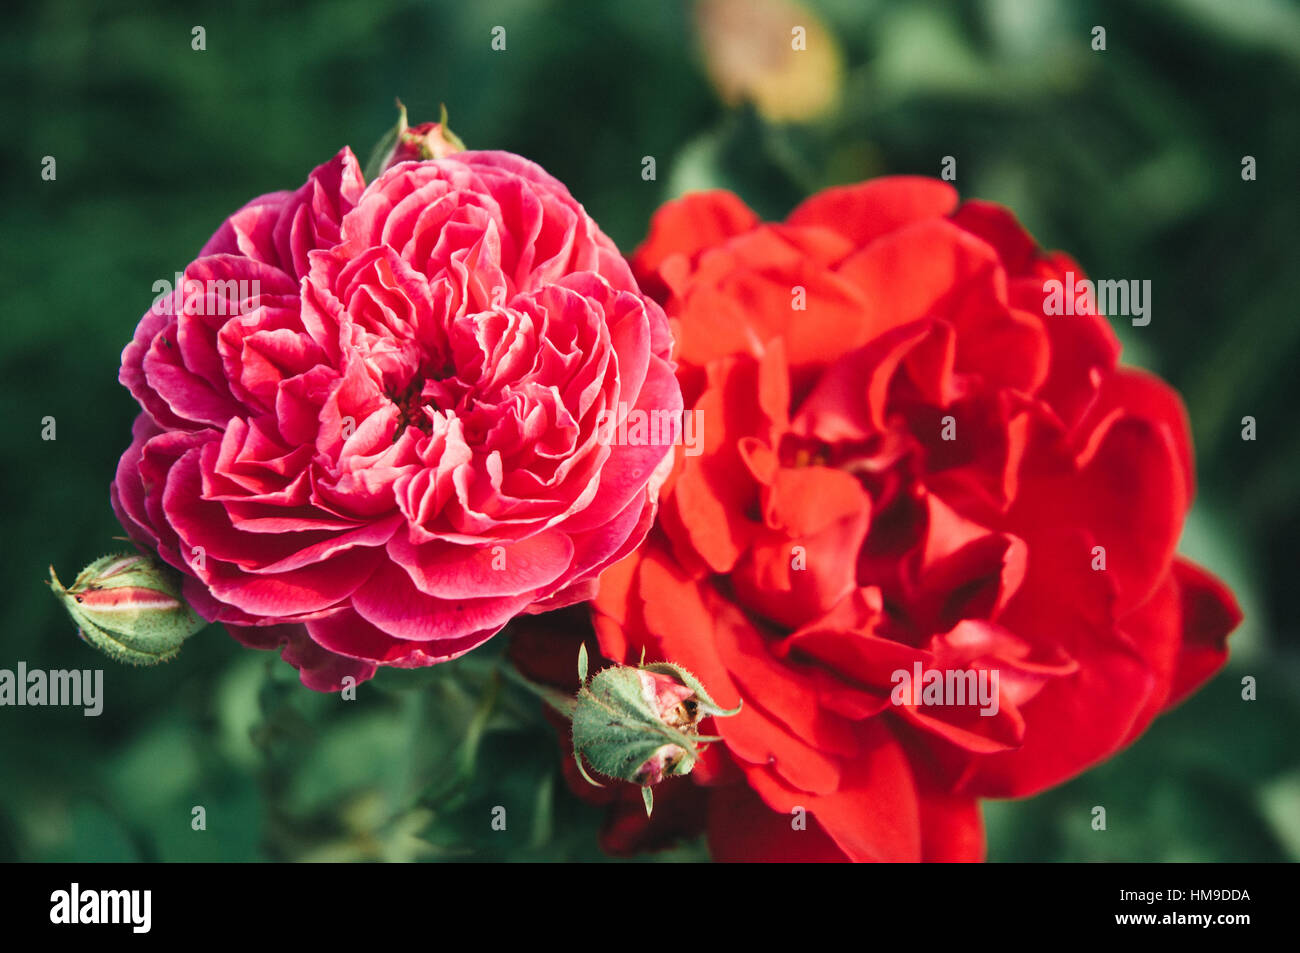 Red roses in the garden - Stock Image